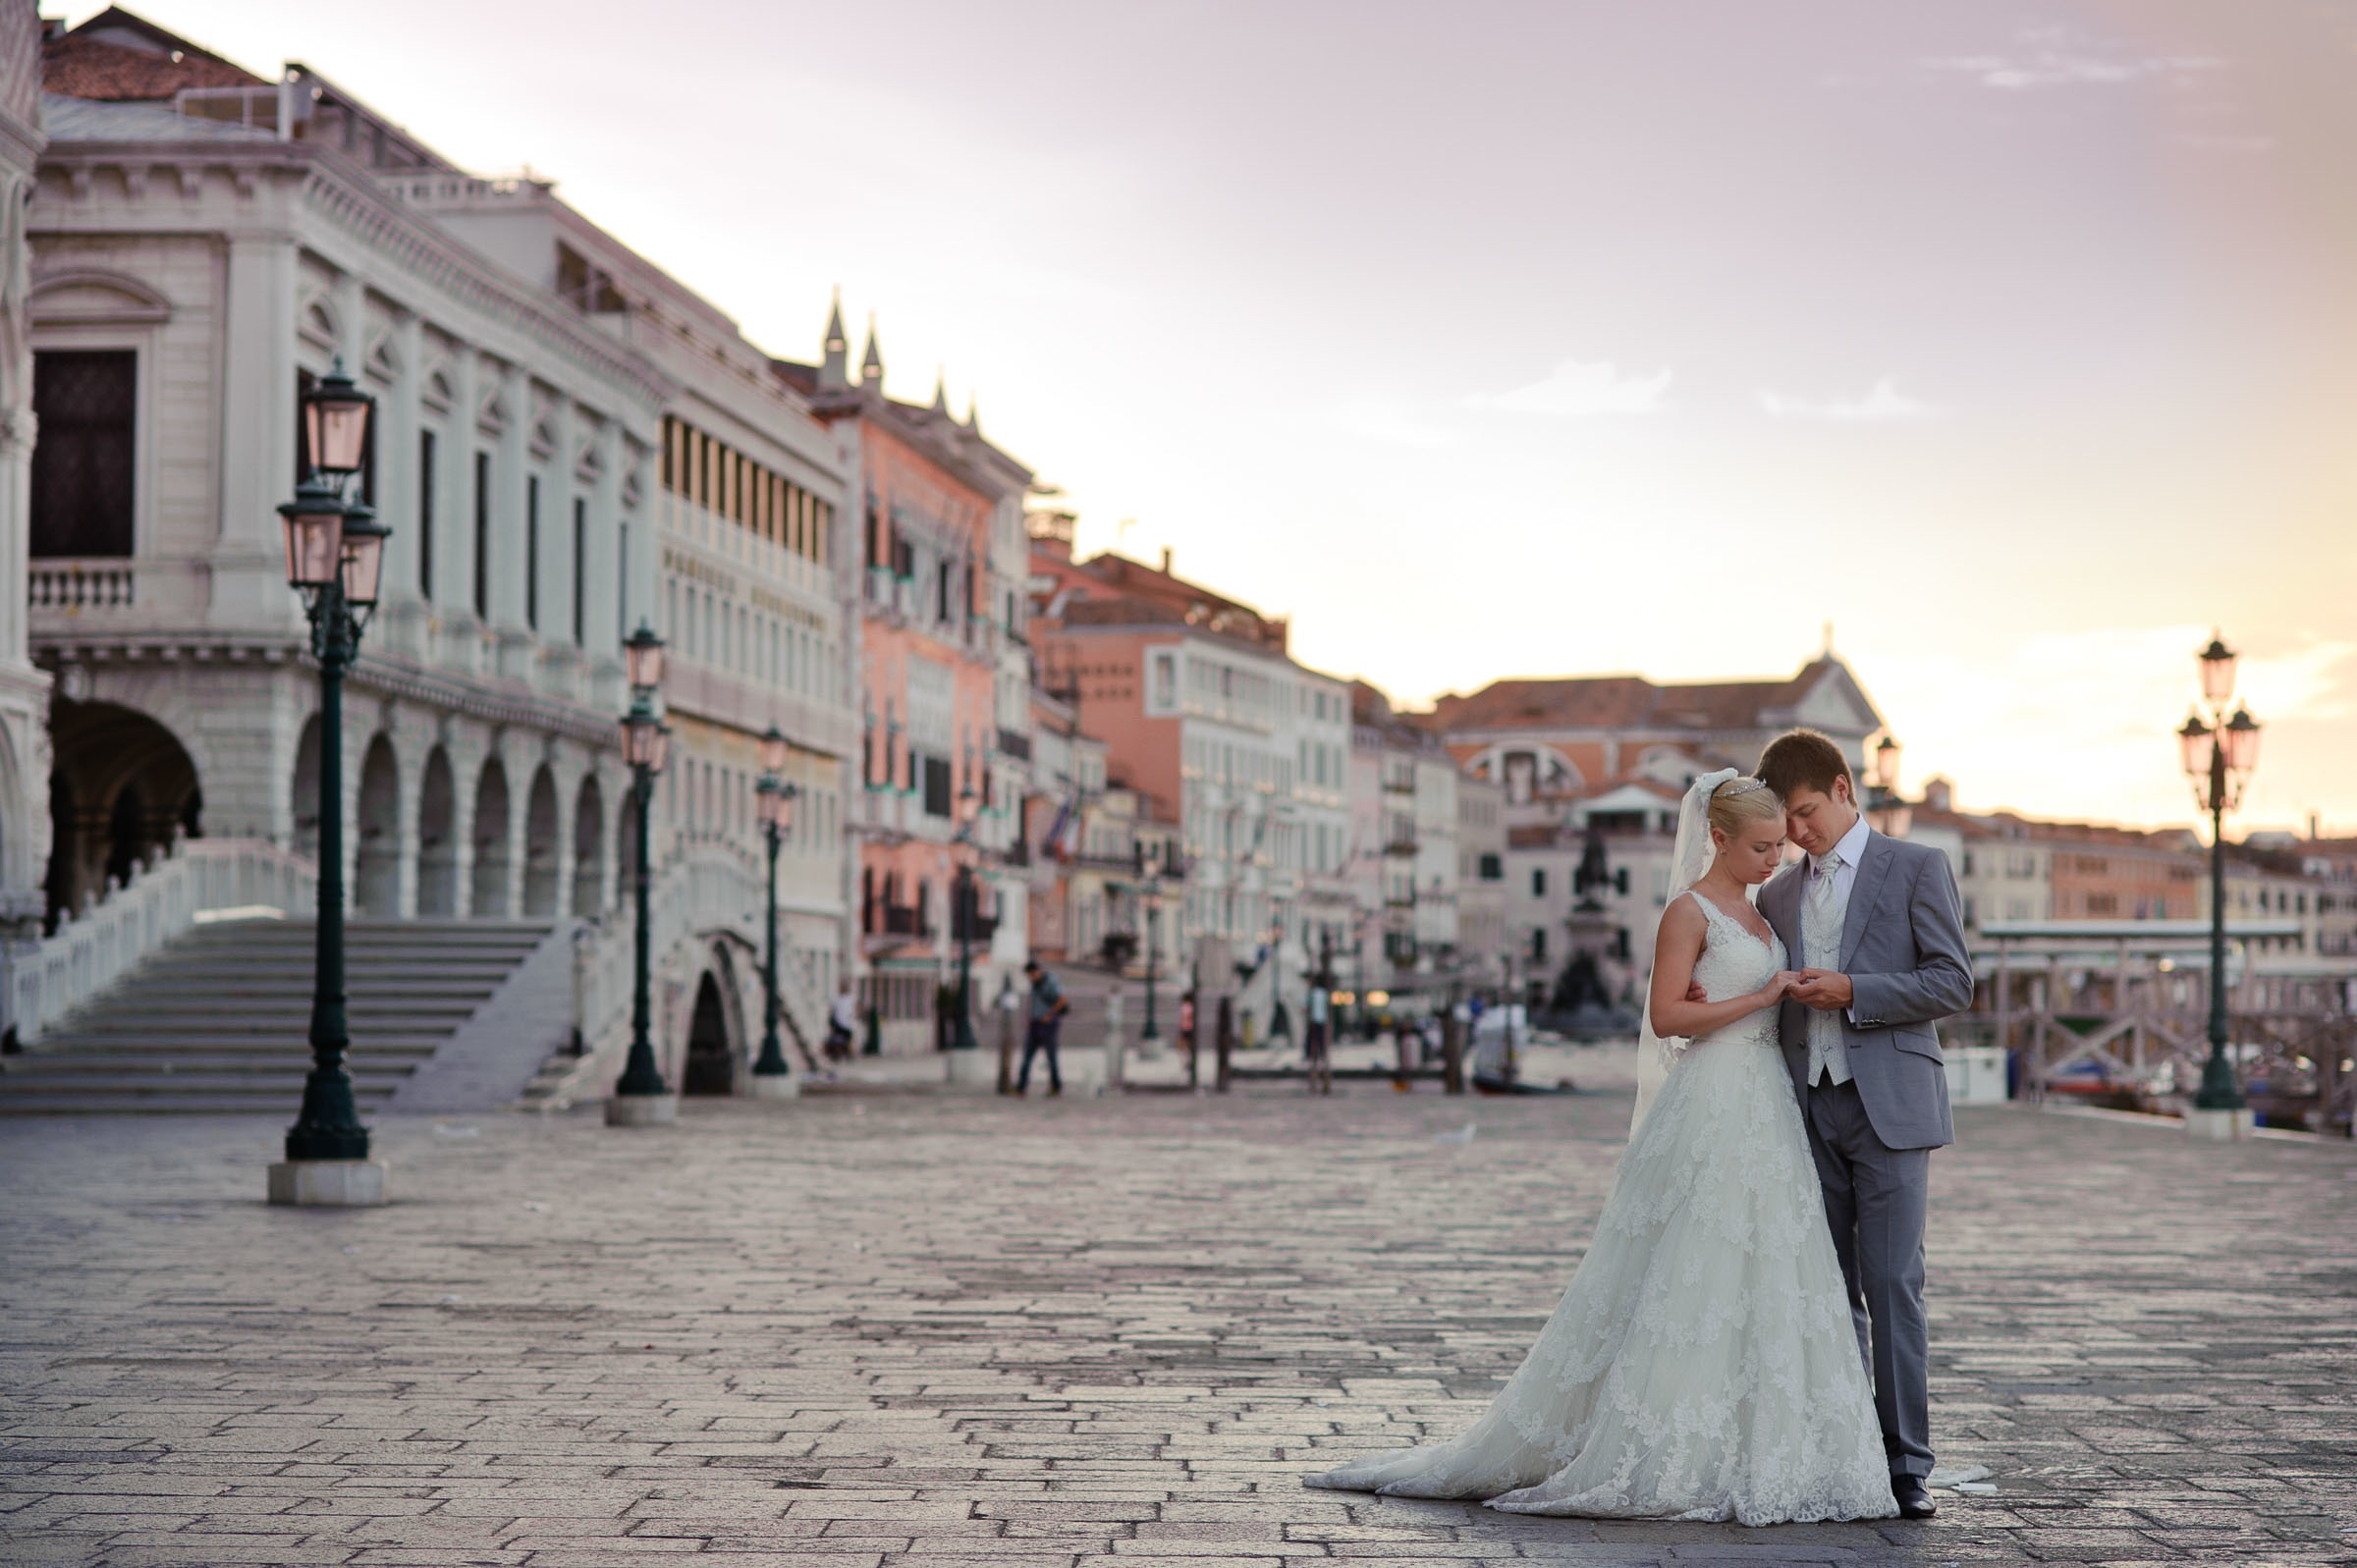 wedding photo session at San. Marco square